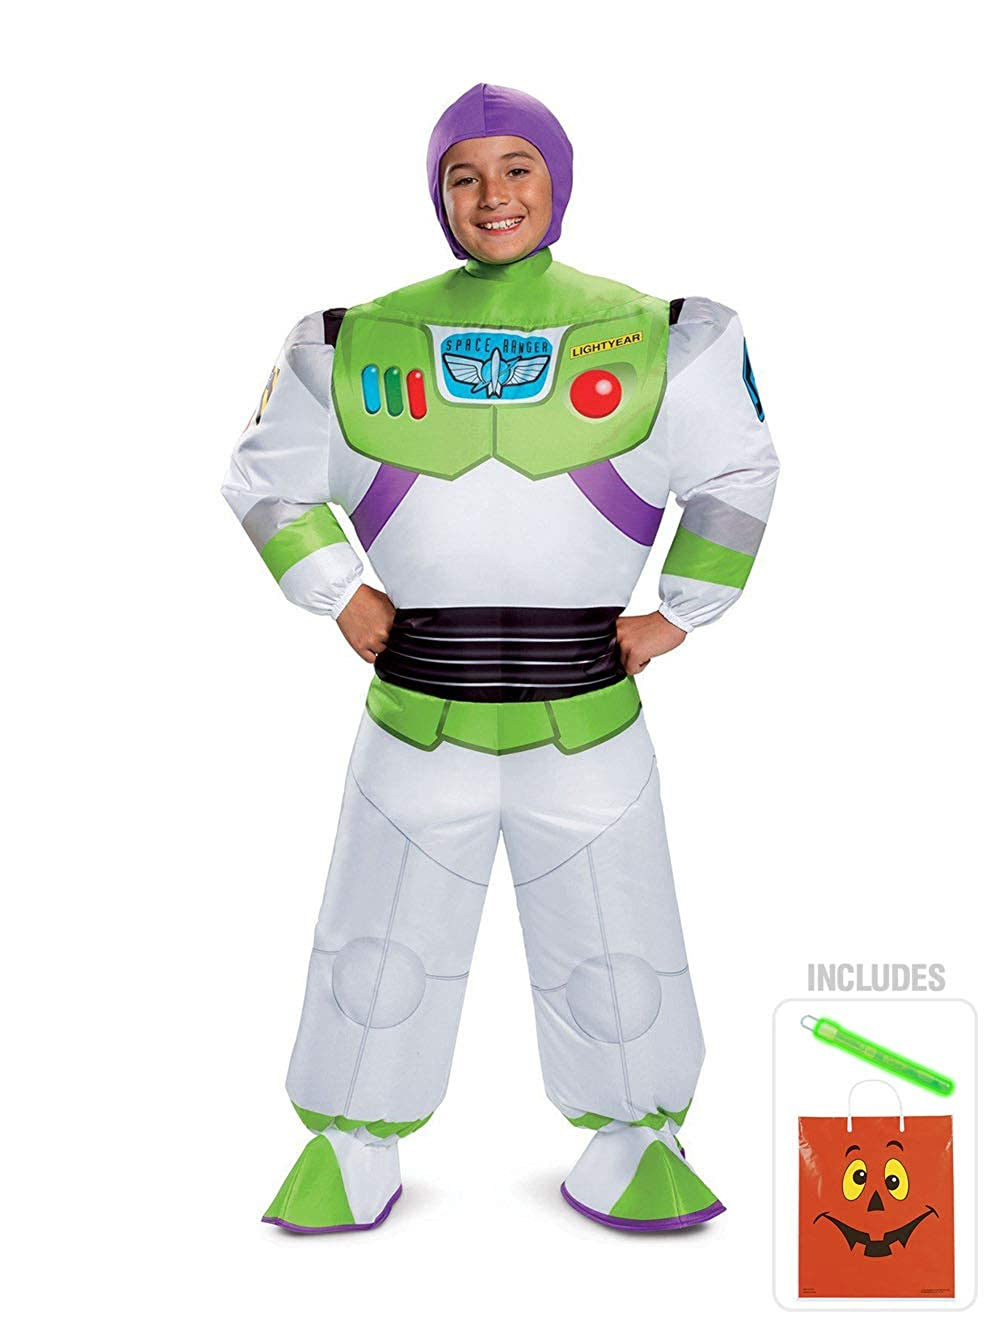 Amazon.com: Toy Story 4 Buzz Lightyear Kit de disfraz ...